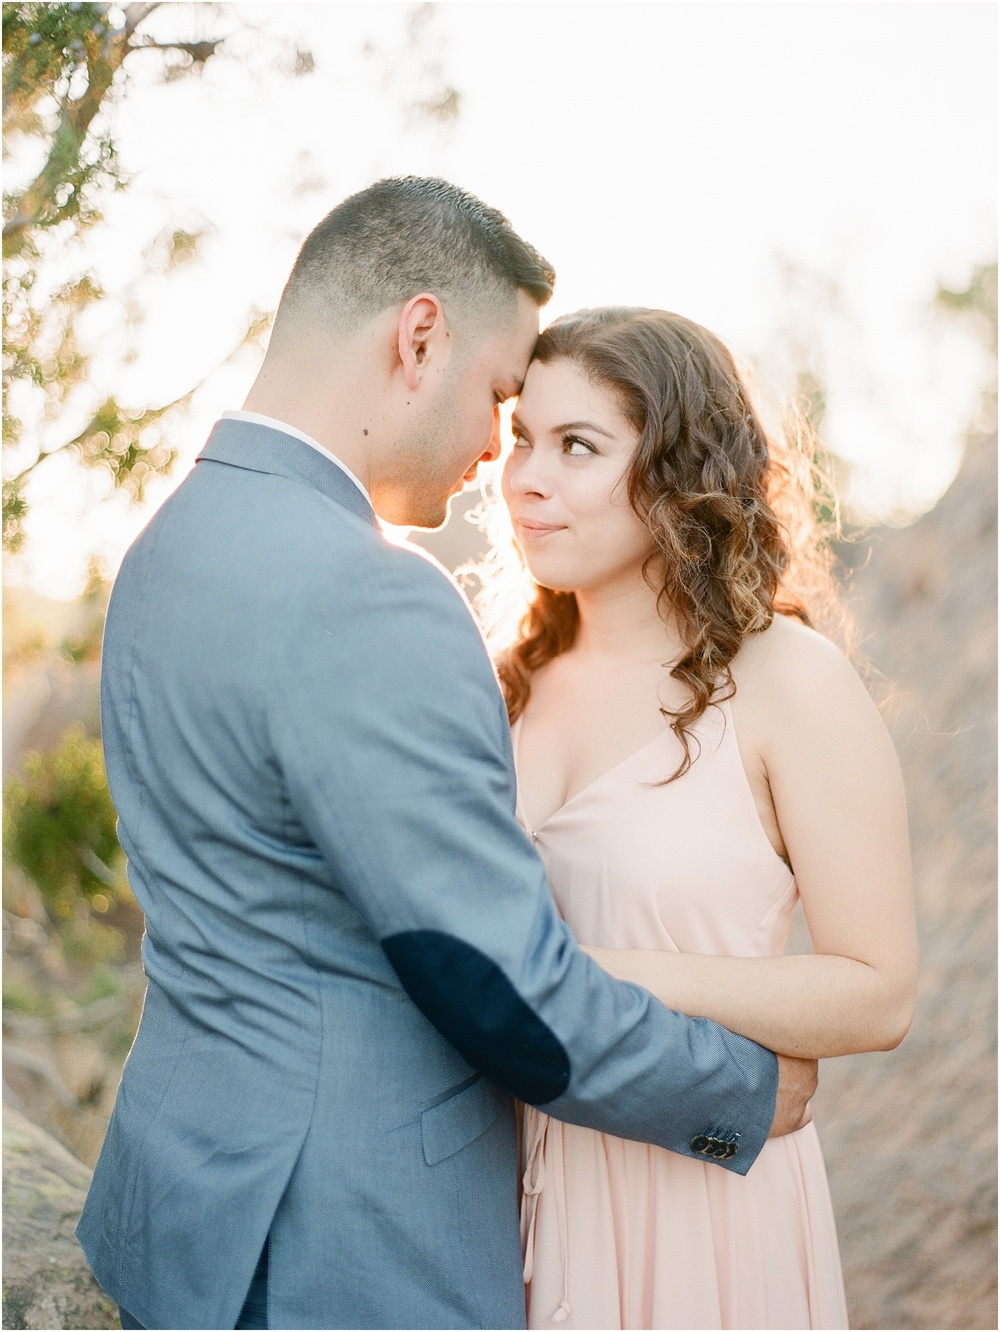 Vasquez-rocks-engagement-session-69.jpg